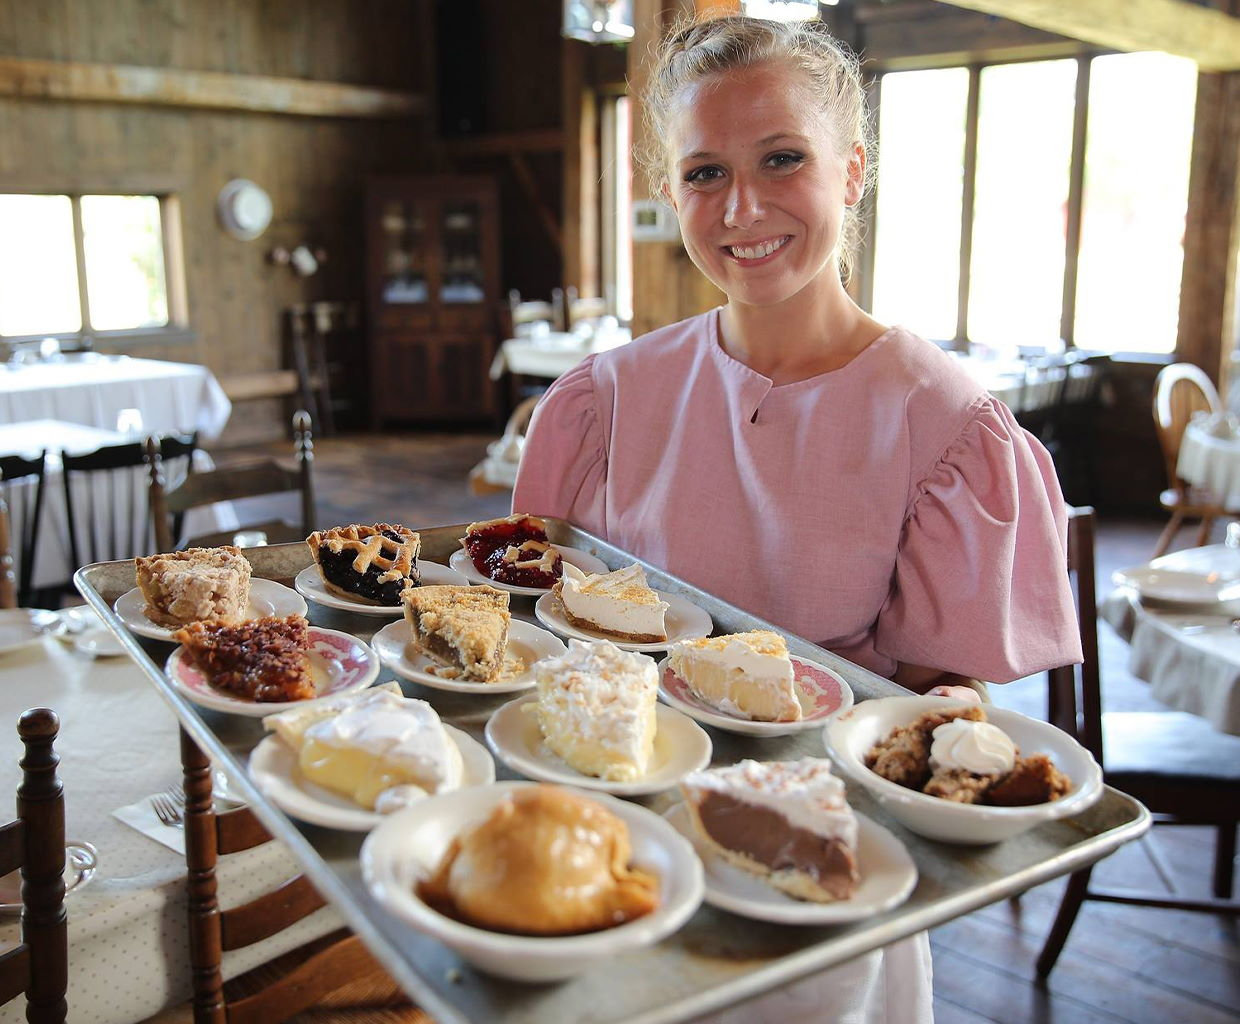 Waitress holding a try of pies at Amish Acres Restaurant Barn in Nappanee